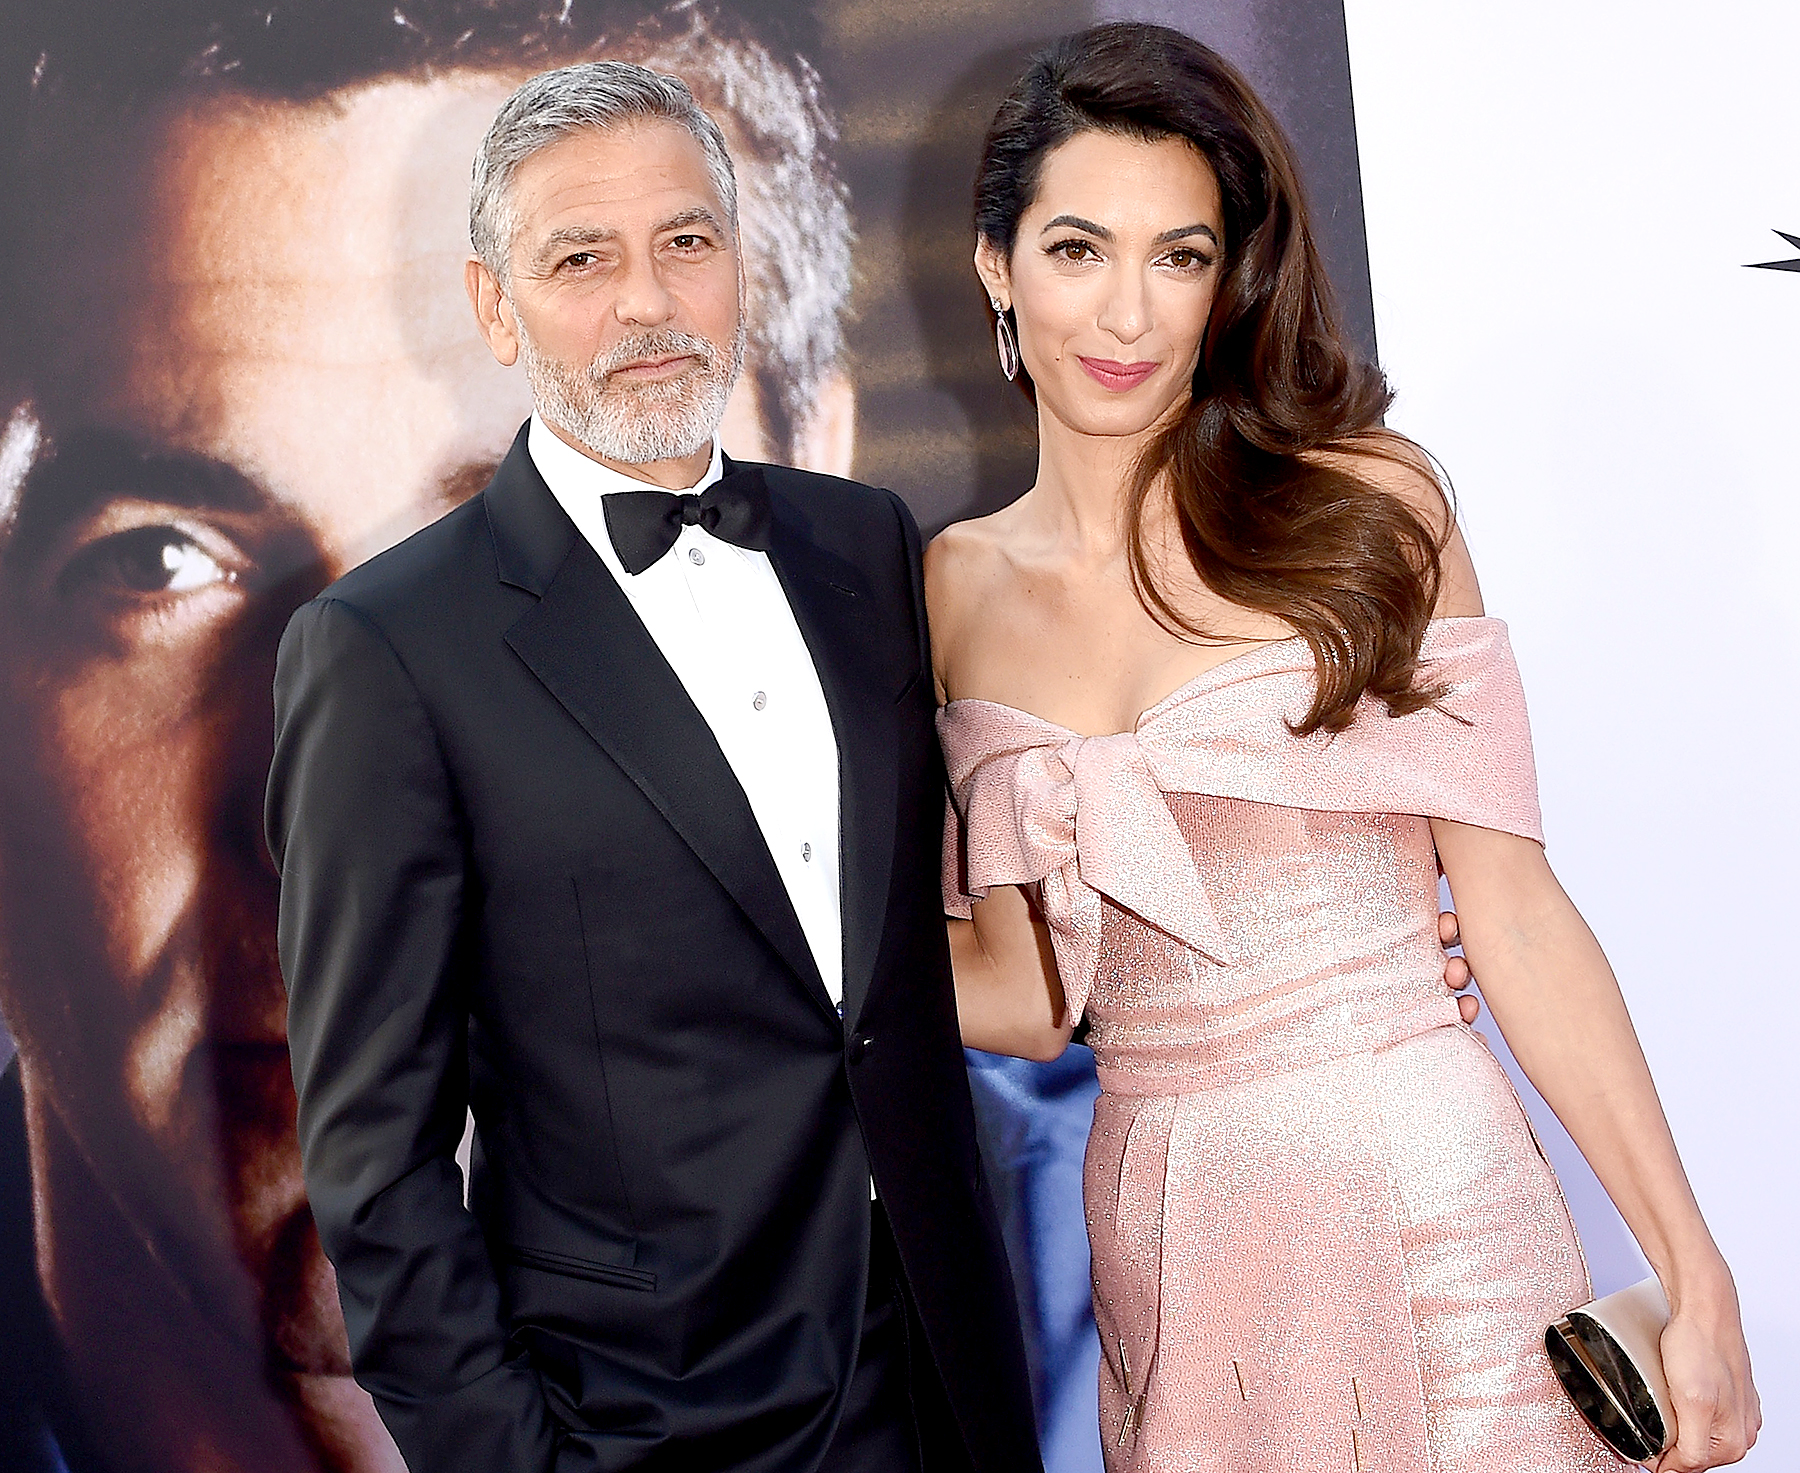 George and Amal Clooney donate $100,000 to support immigrant children